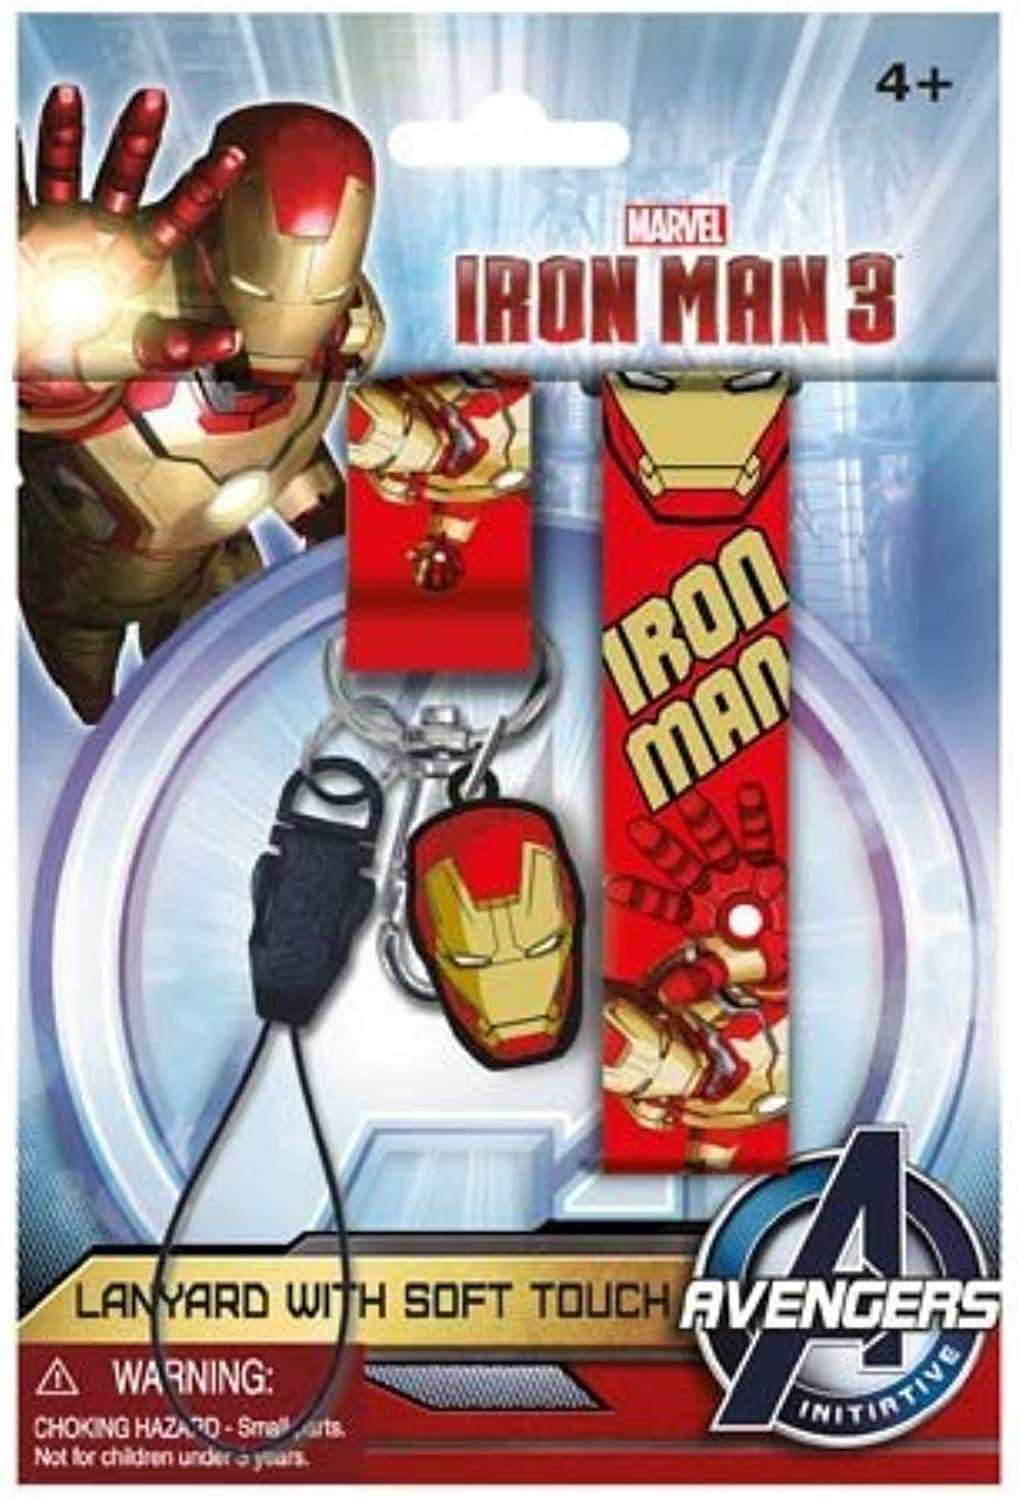 Marvel Iron Man 3 Lanyard with PVC Dangle by Marvel